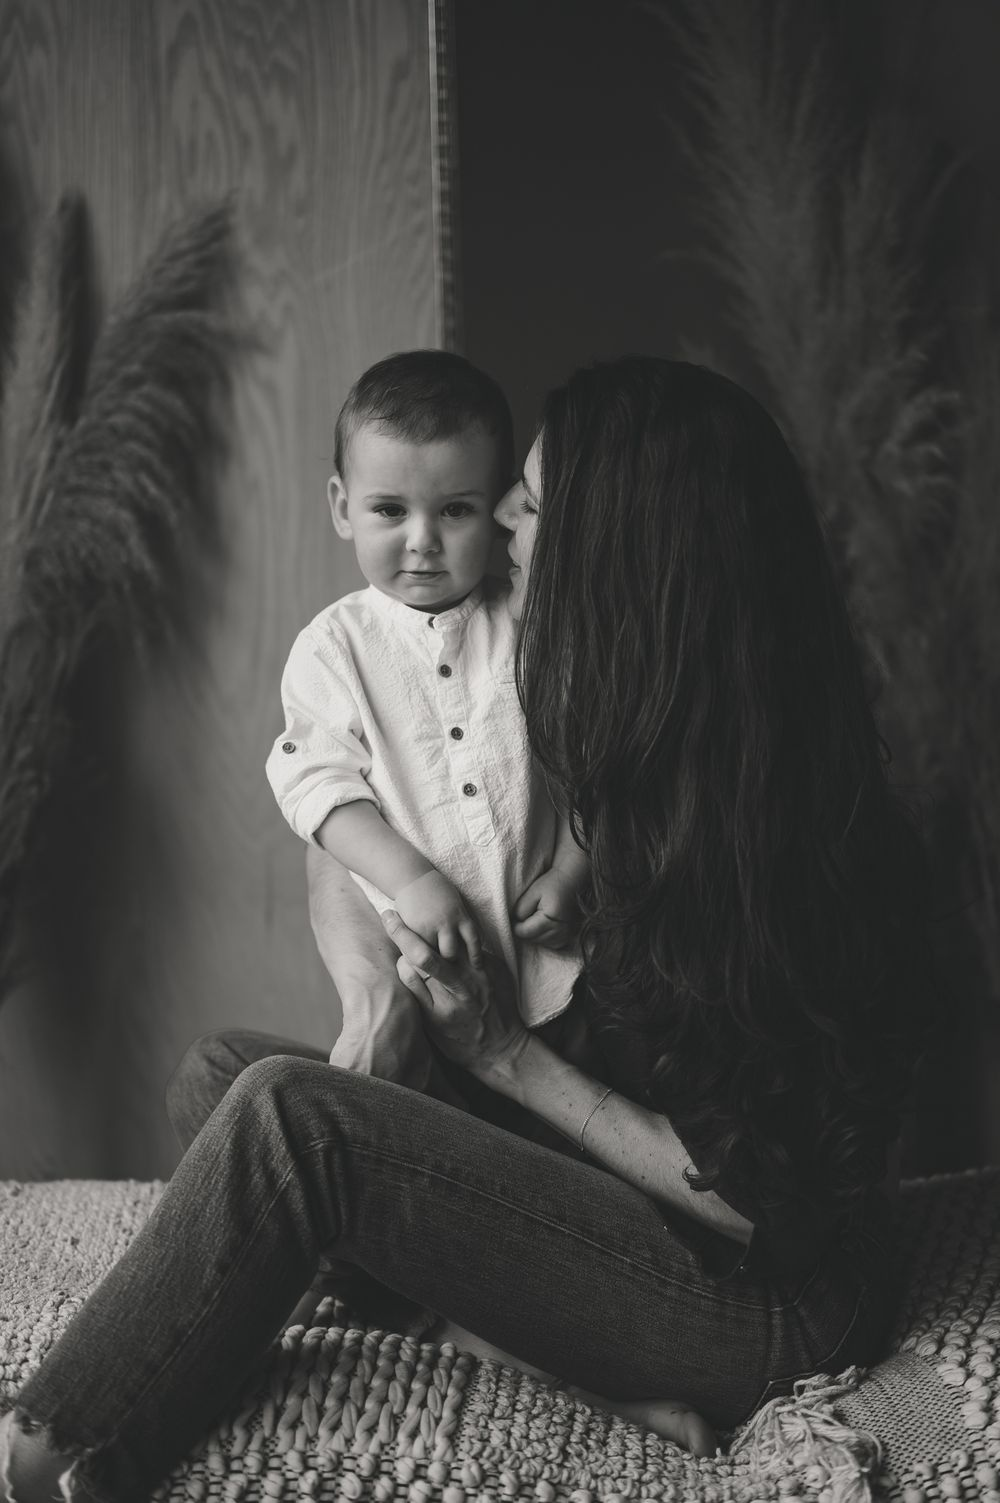 Black and White motherhood portrait by Tiffany Kelterer of mom with toddler boy and he's looking directly at the camera